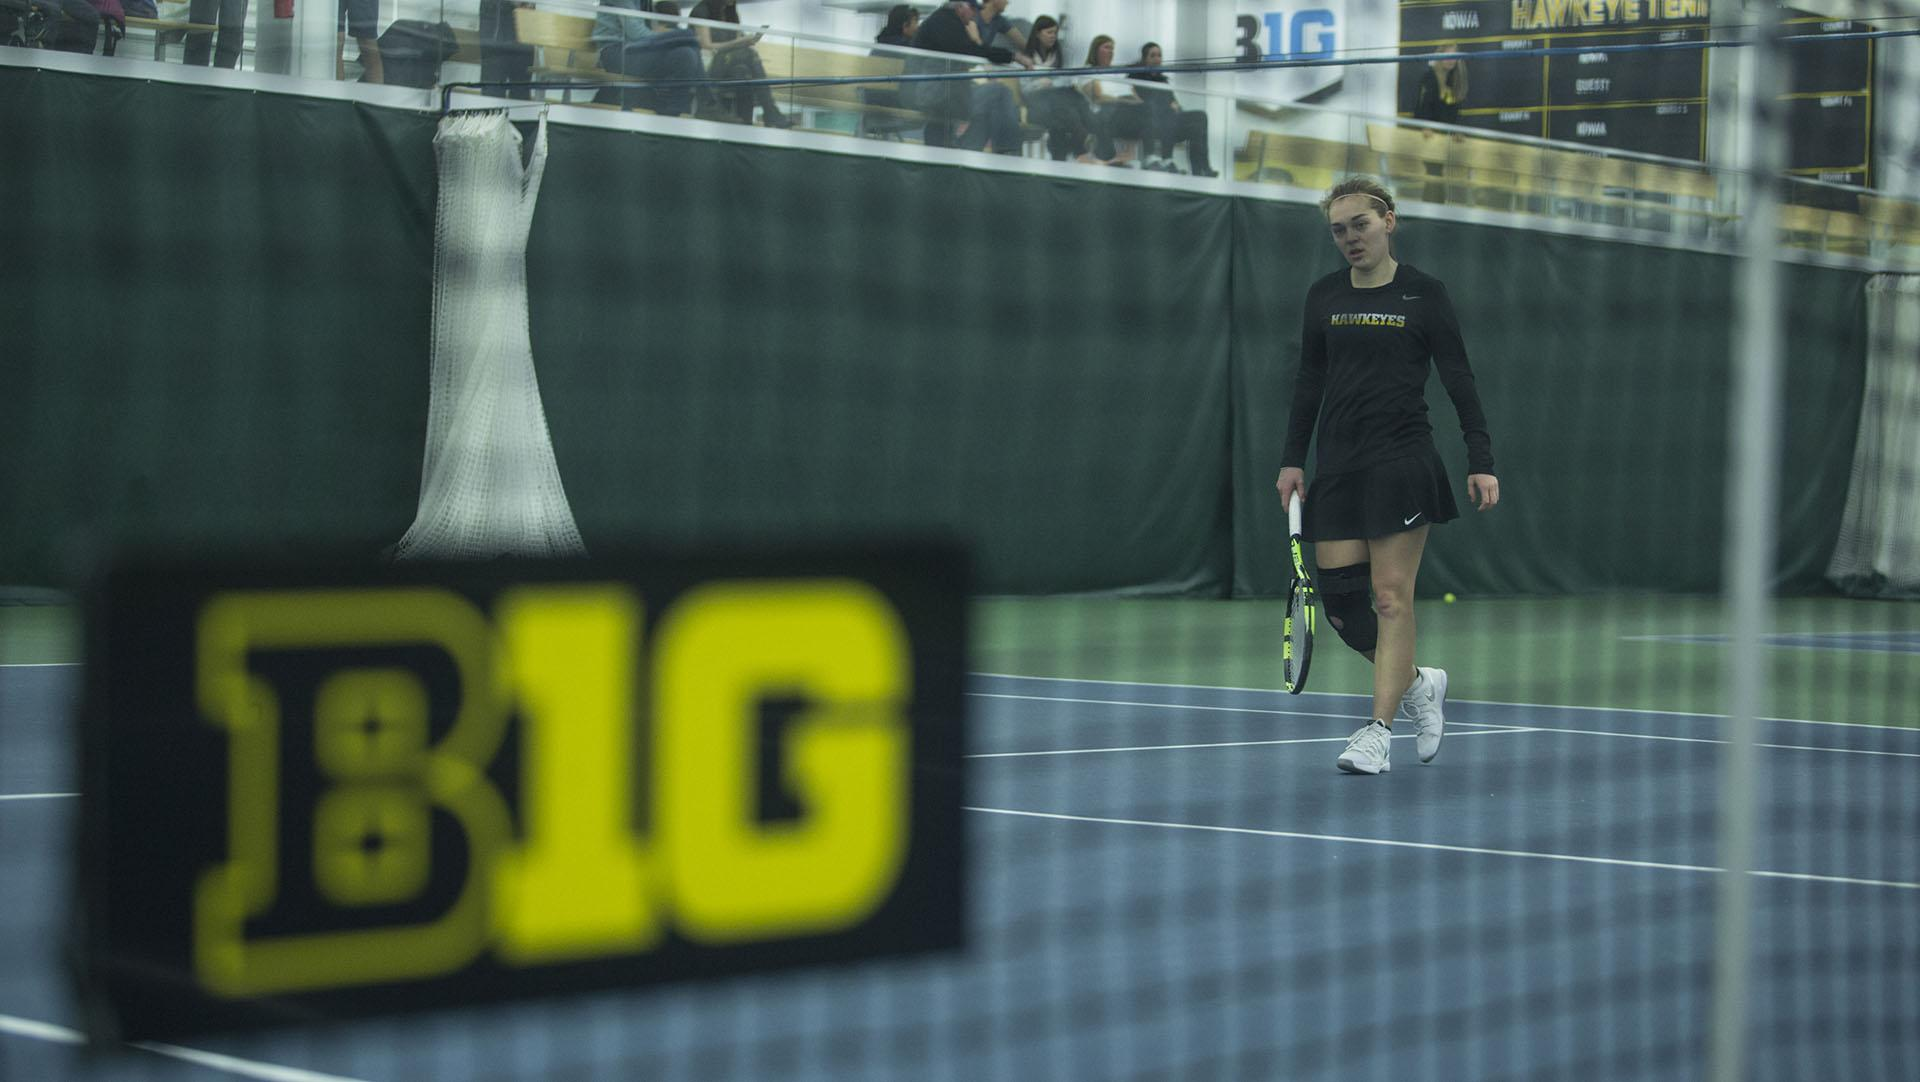 Iowa's Zoe Douglas reacts during a tennis match between Iowa and Ohio State in Iowa City on Sunday, March 25, 2018. The Buckeyes swept the doubles point and won the match, 6-1. (Shivansh Ahuja/The Daily Iowan)